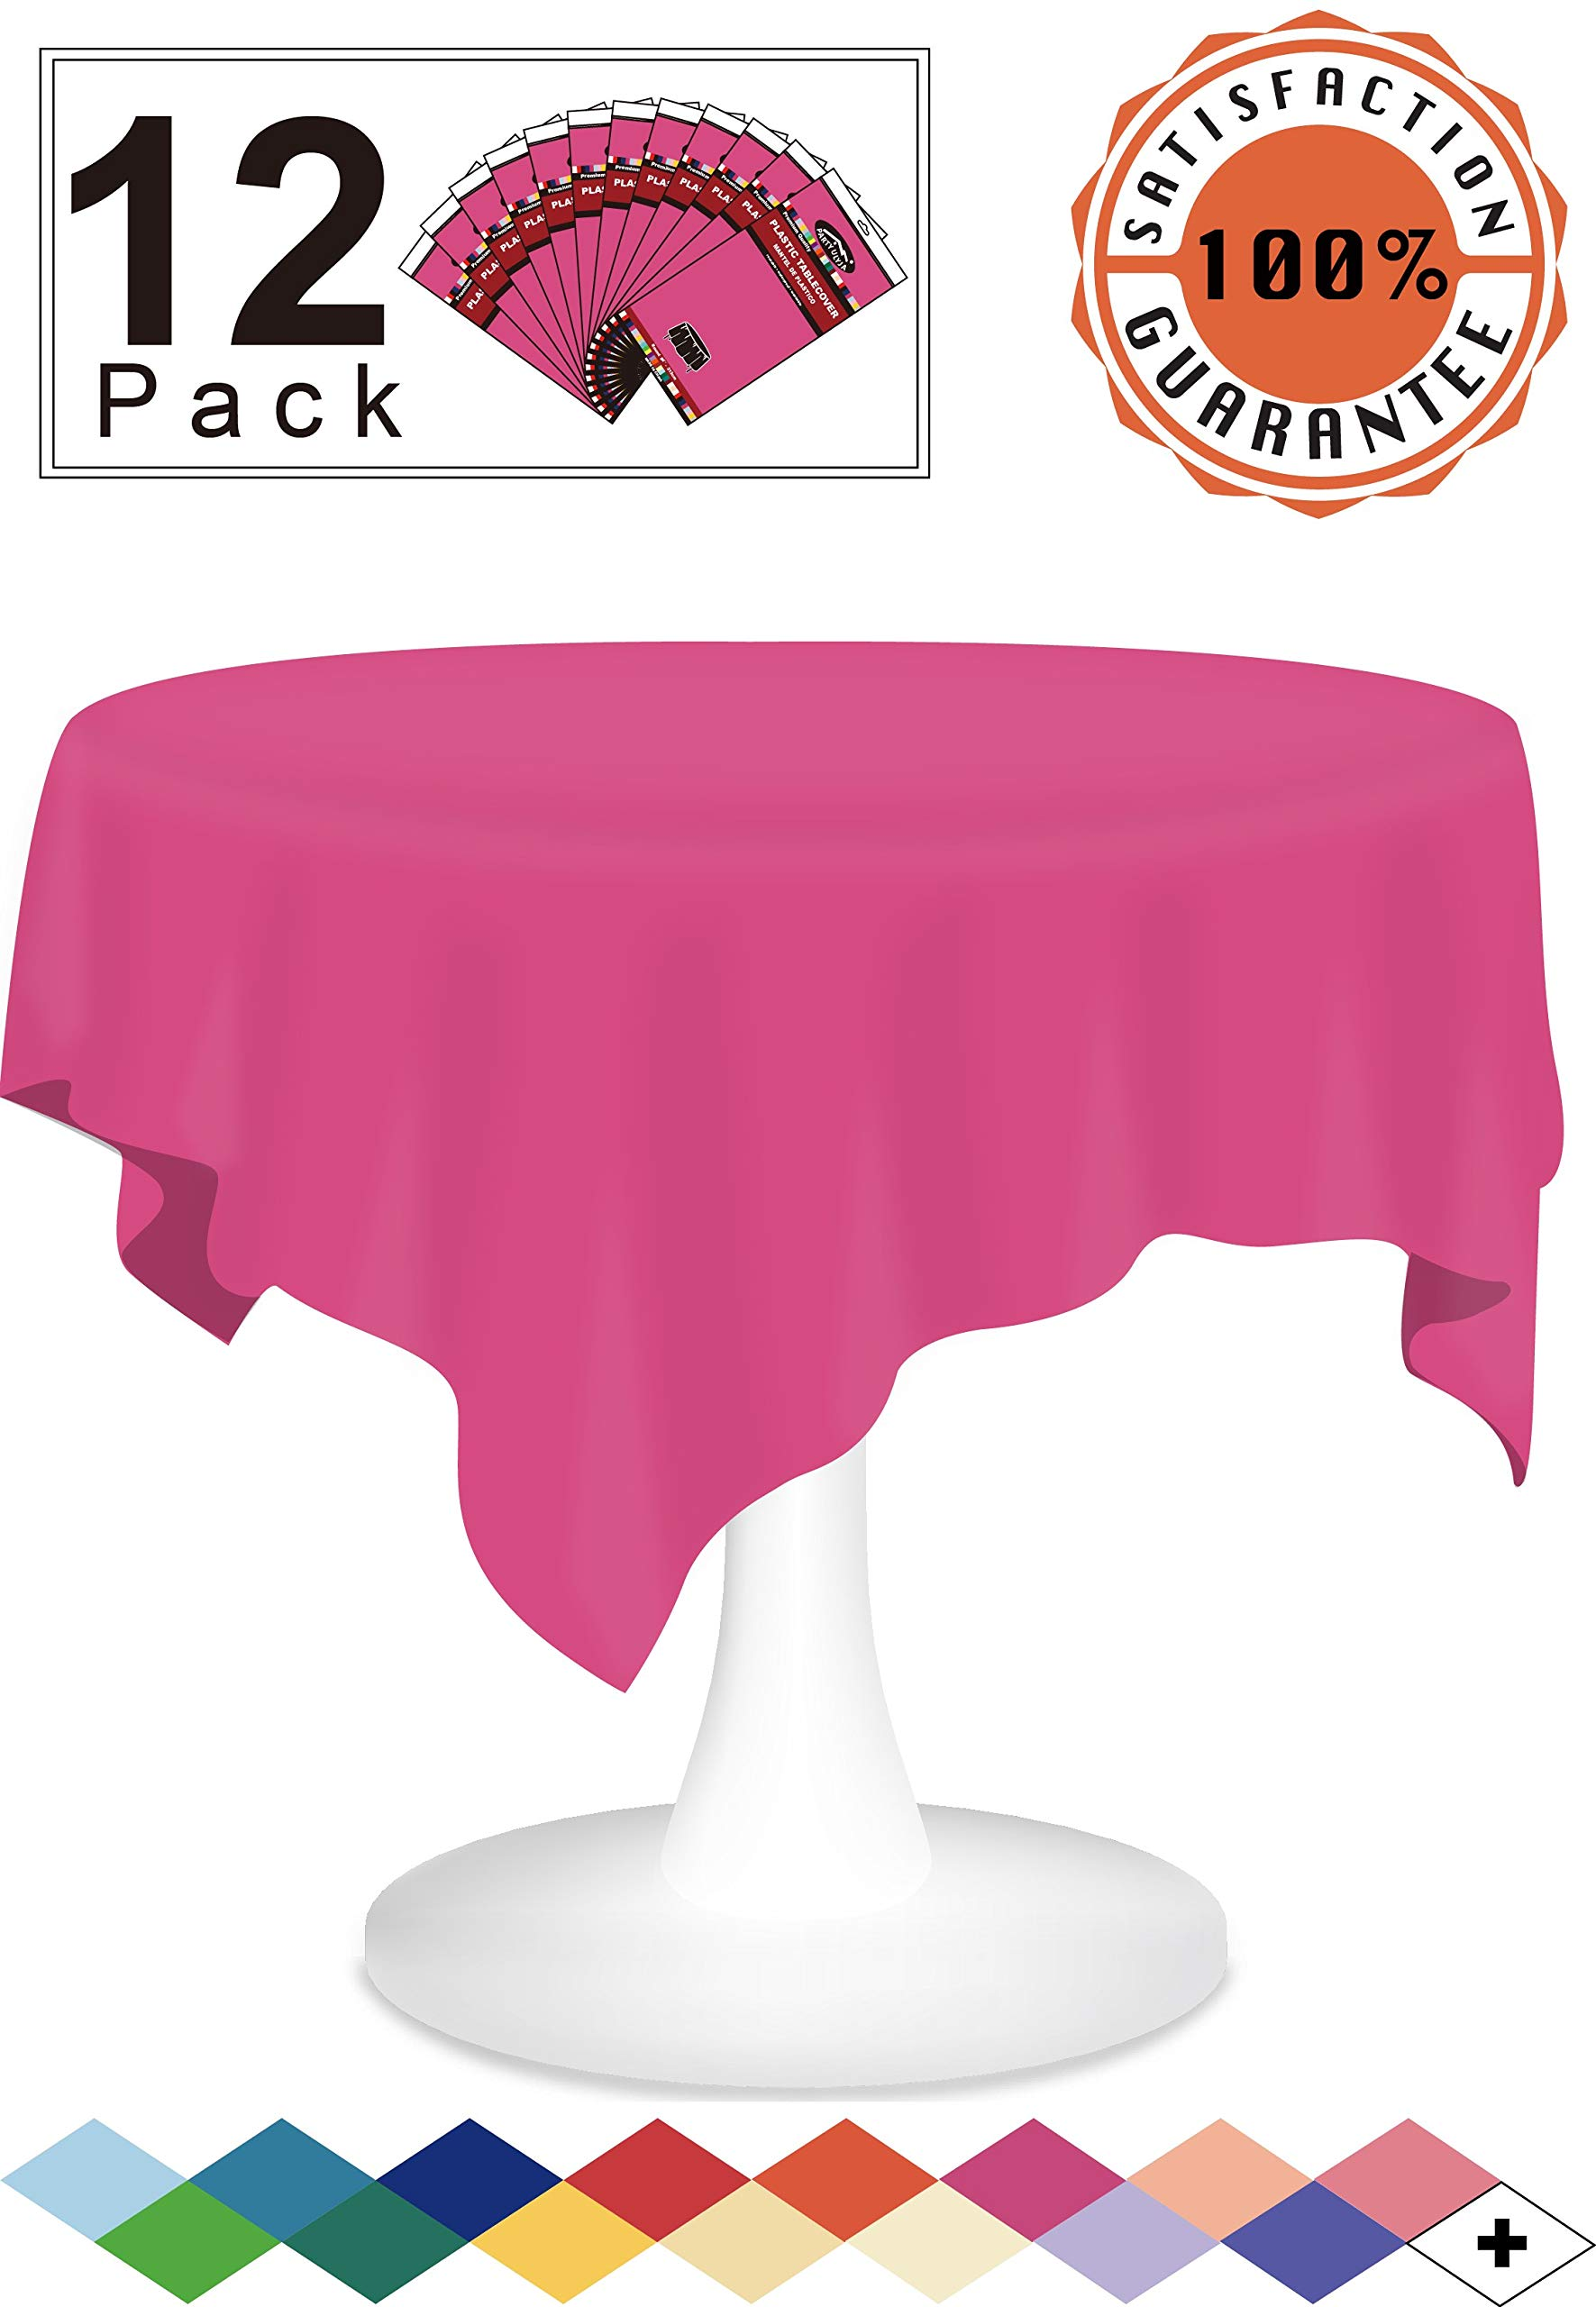 Cerise Plastic Tablecloths Disposable Table Covers 12 Pack Premium 84 Inches Round Table Cloths for Round Tables up to 6 Feet and for Picnic BBQ Birthdays Weddings any Events Occasions, PEVA Material by party ulyja